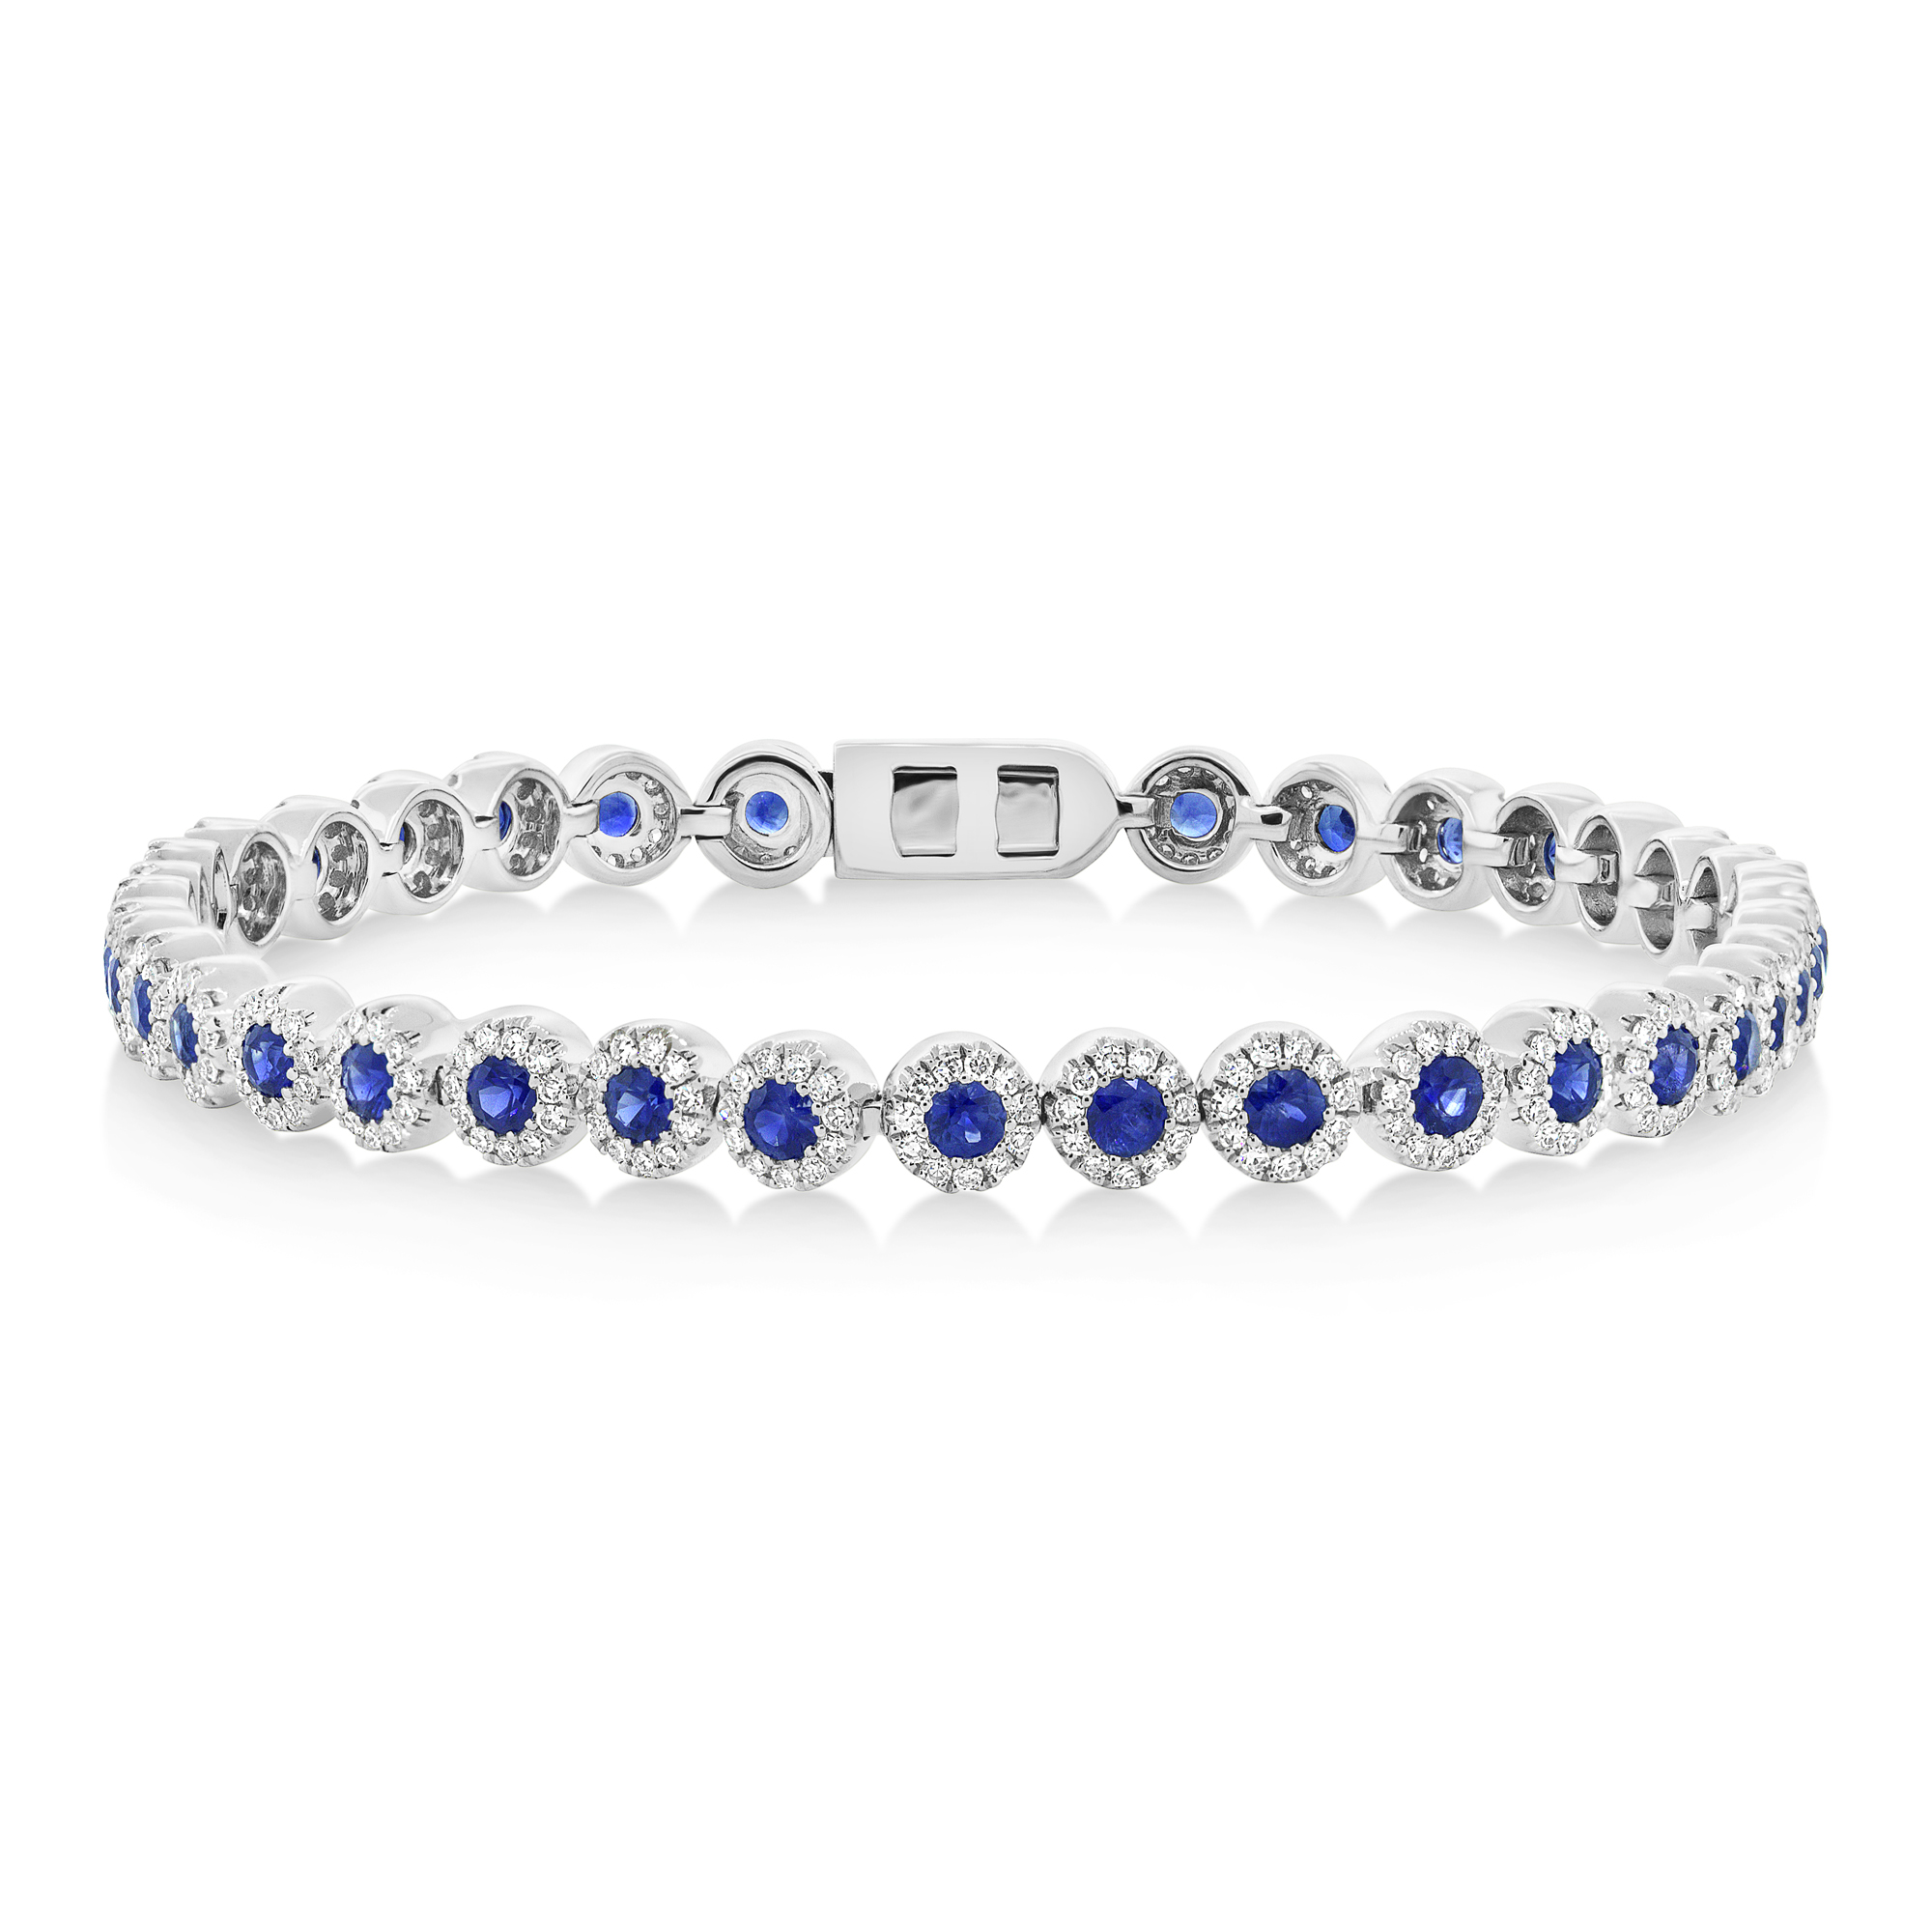 illusion see scroll images bracelet shop more maddaloni bracelets diamond tennis sapphire imag to oval